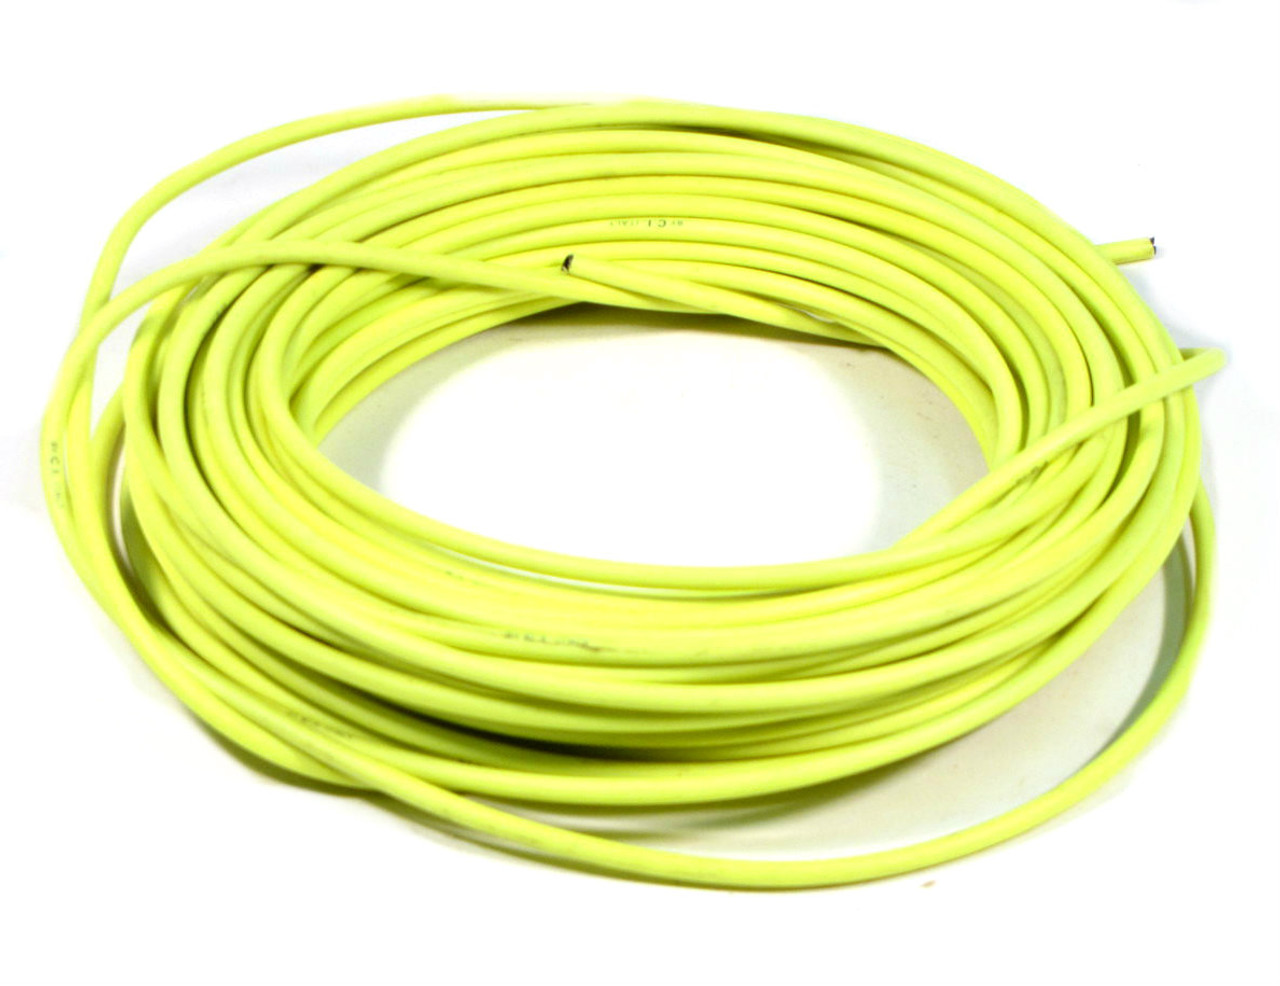 Neon Yellow Universal Cable Housing *Sold by the Foot*